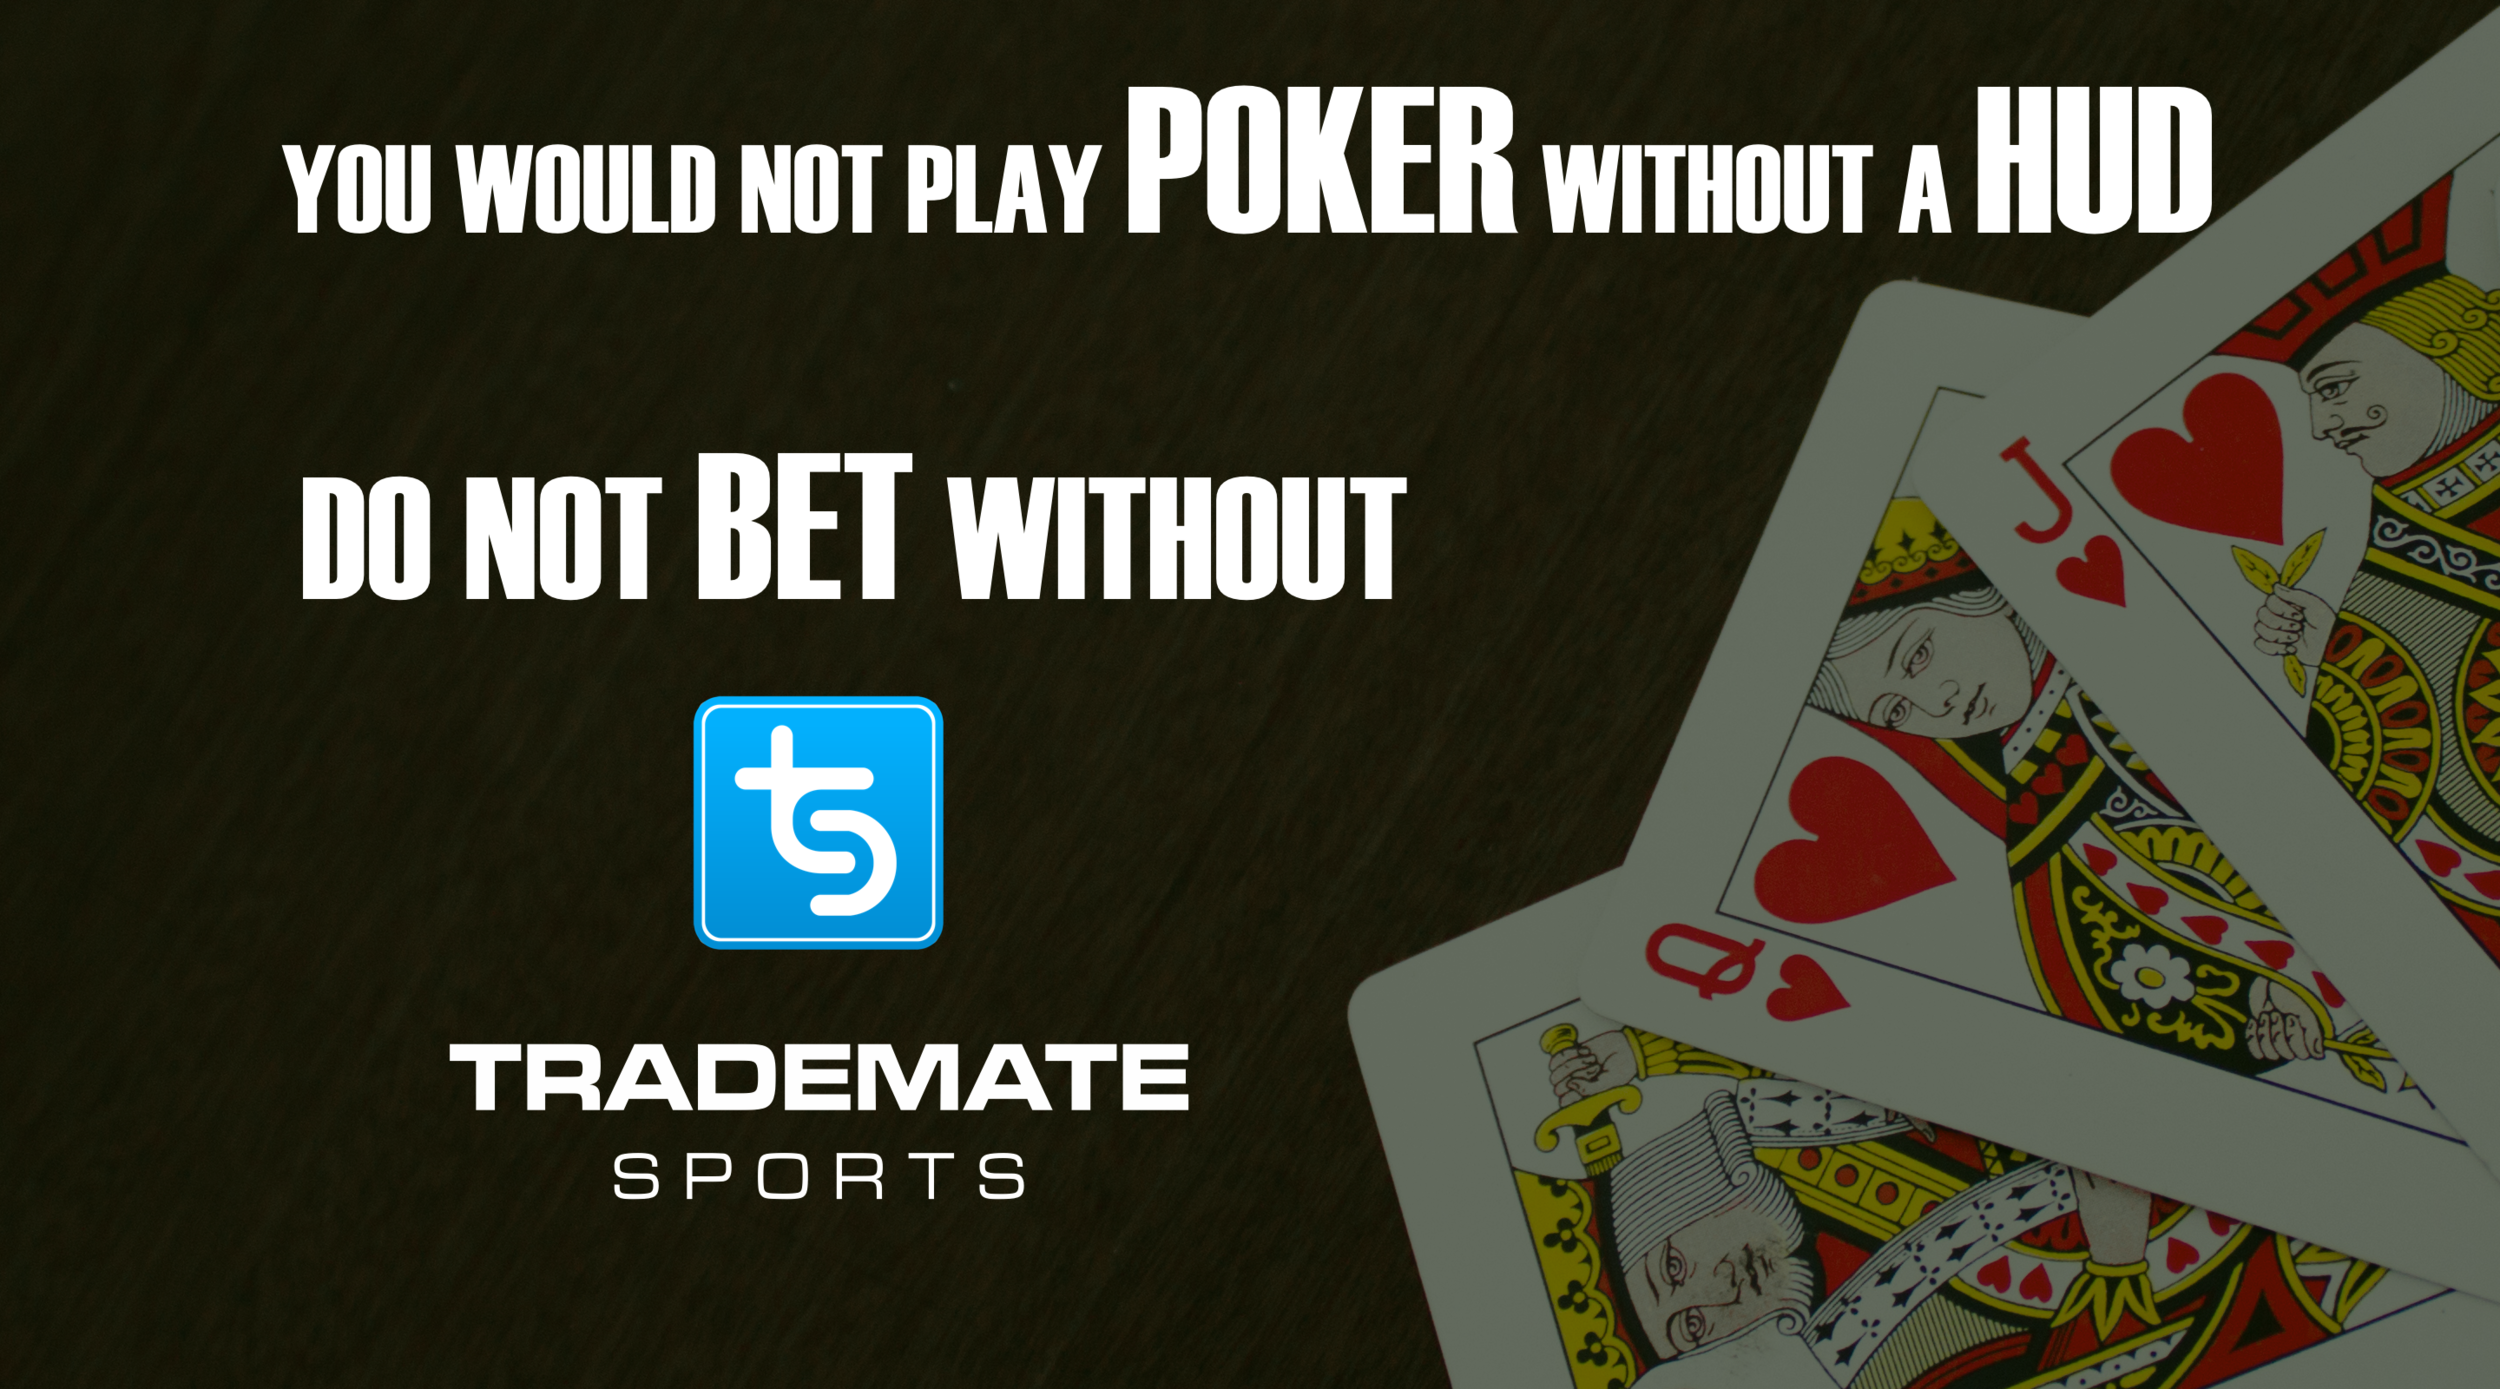 Did you know you can get a 1 week free trial of Trademate Sports?